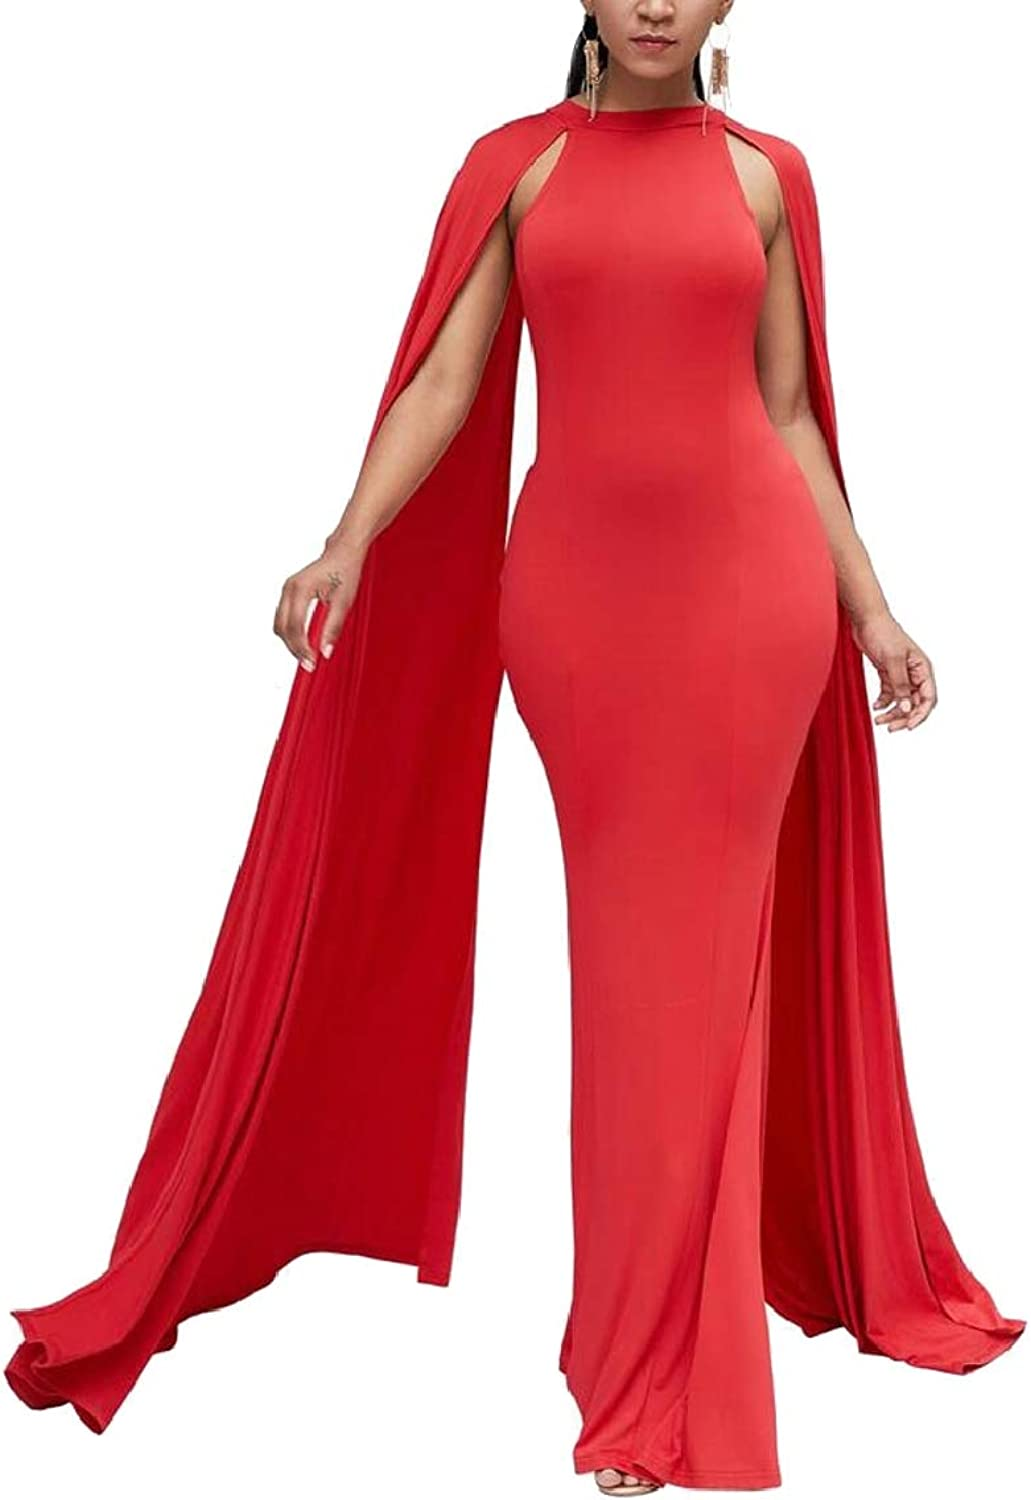 QDCACA Womens Bodycon African Style Evening Party Fishtail Long Maxi Dress